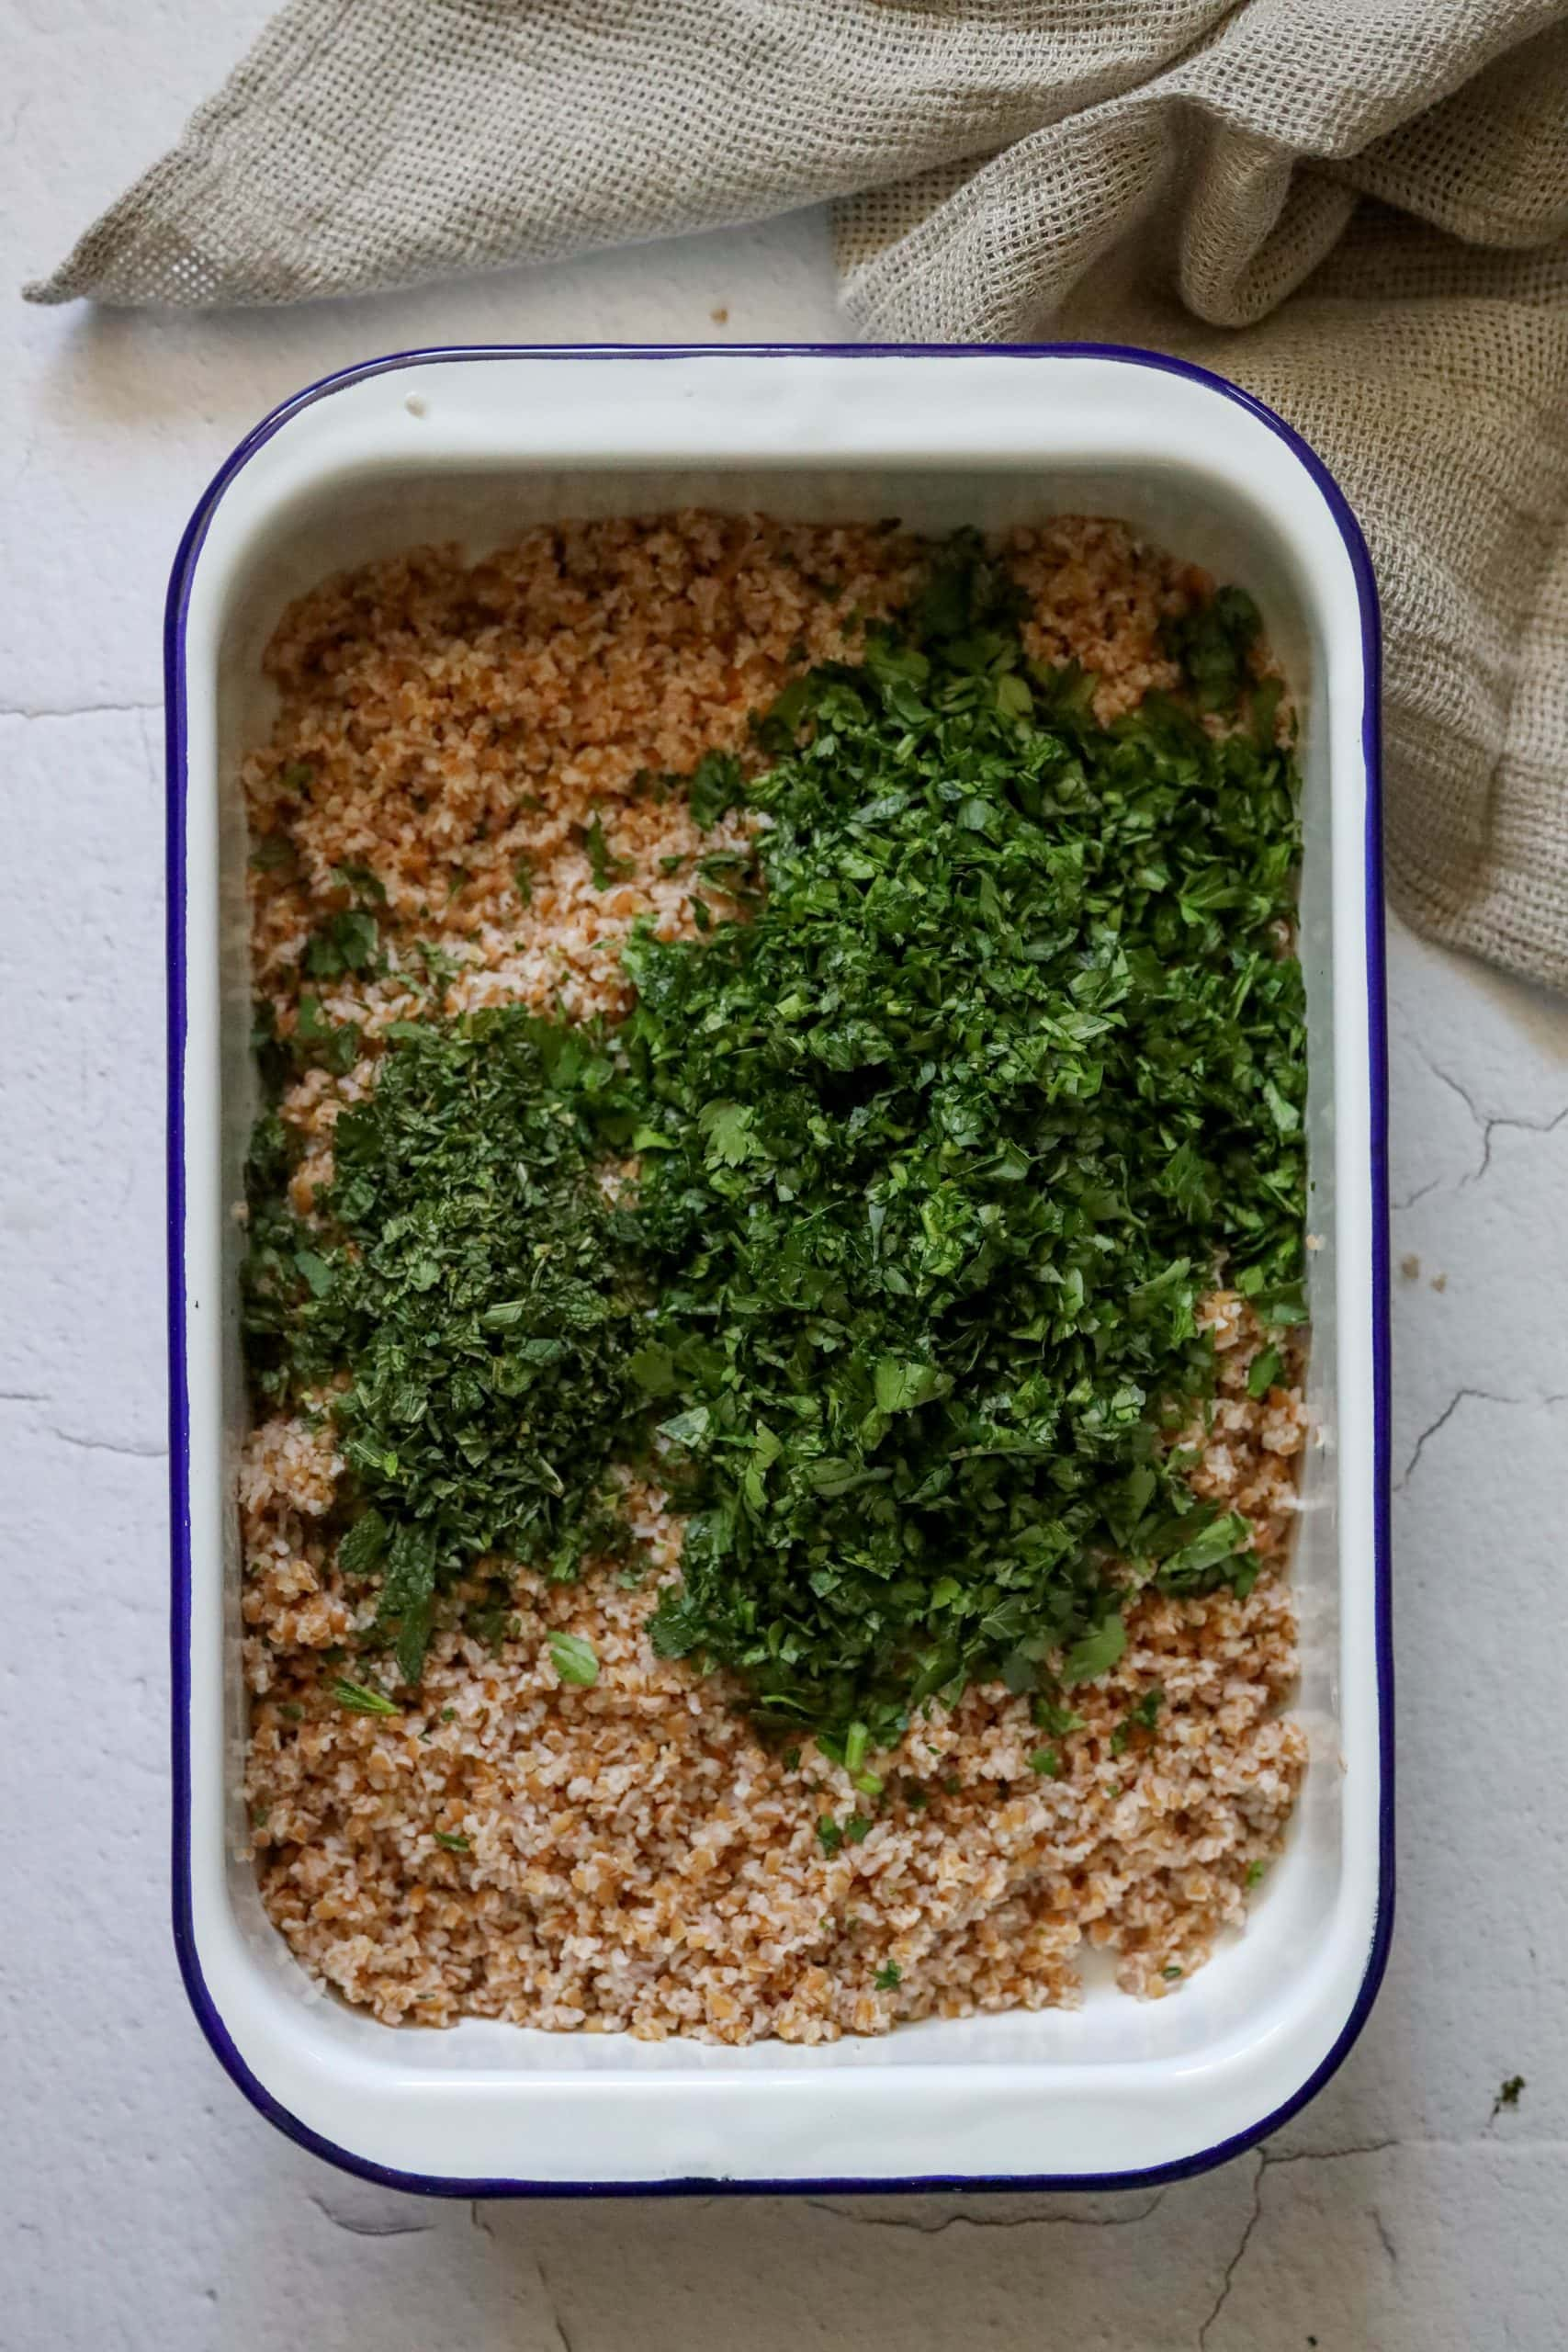 picture of bulgur with finely minced parsley and mint